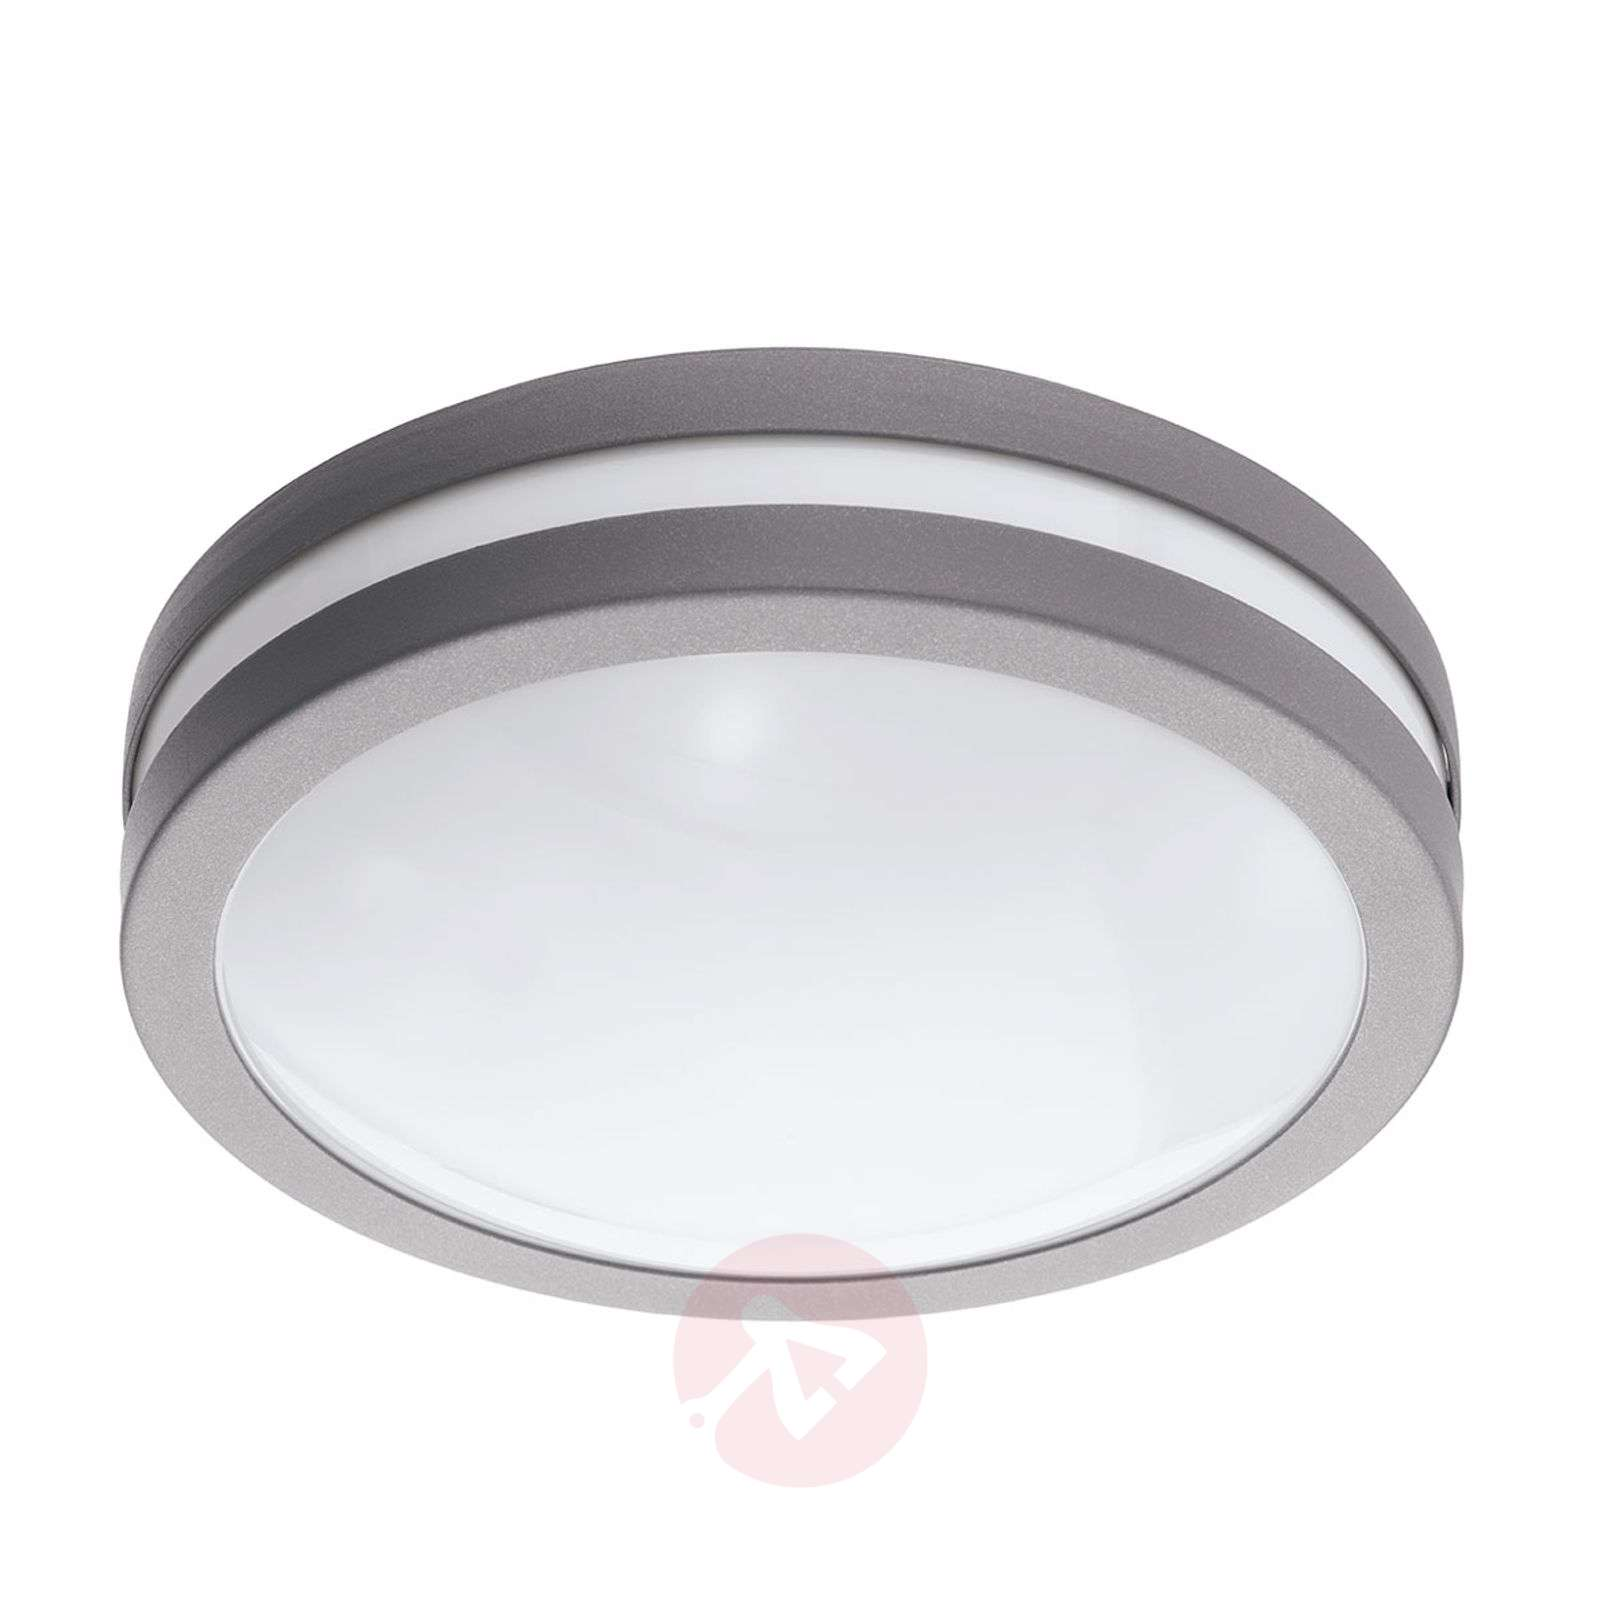 EGLO connect Locana-C applique LED da esterni-3032162X-01